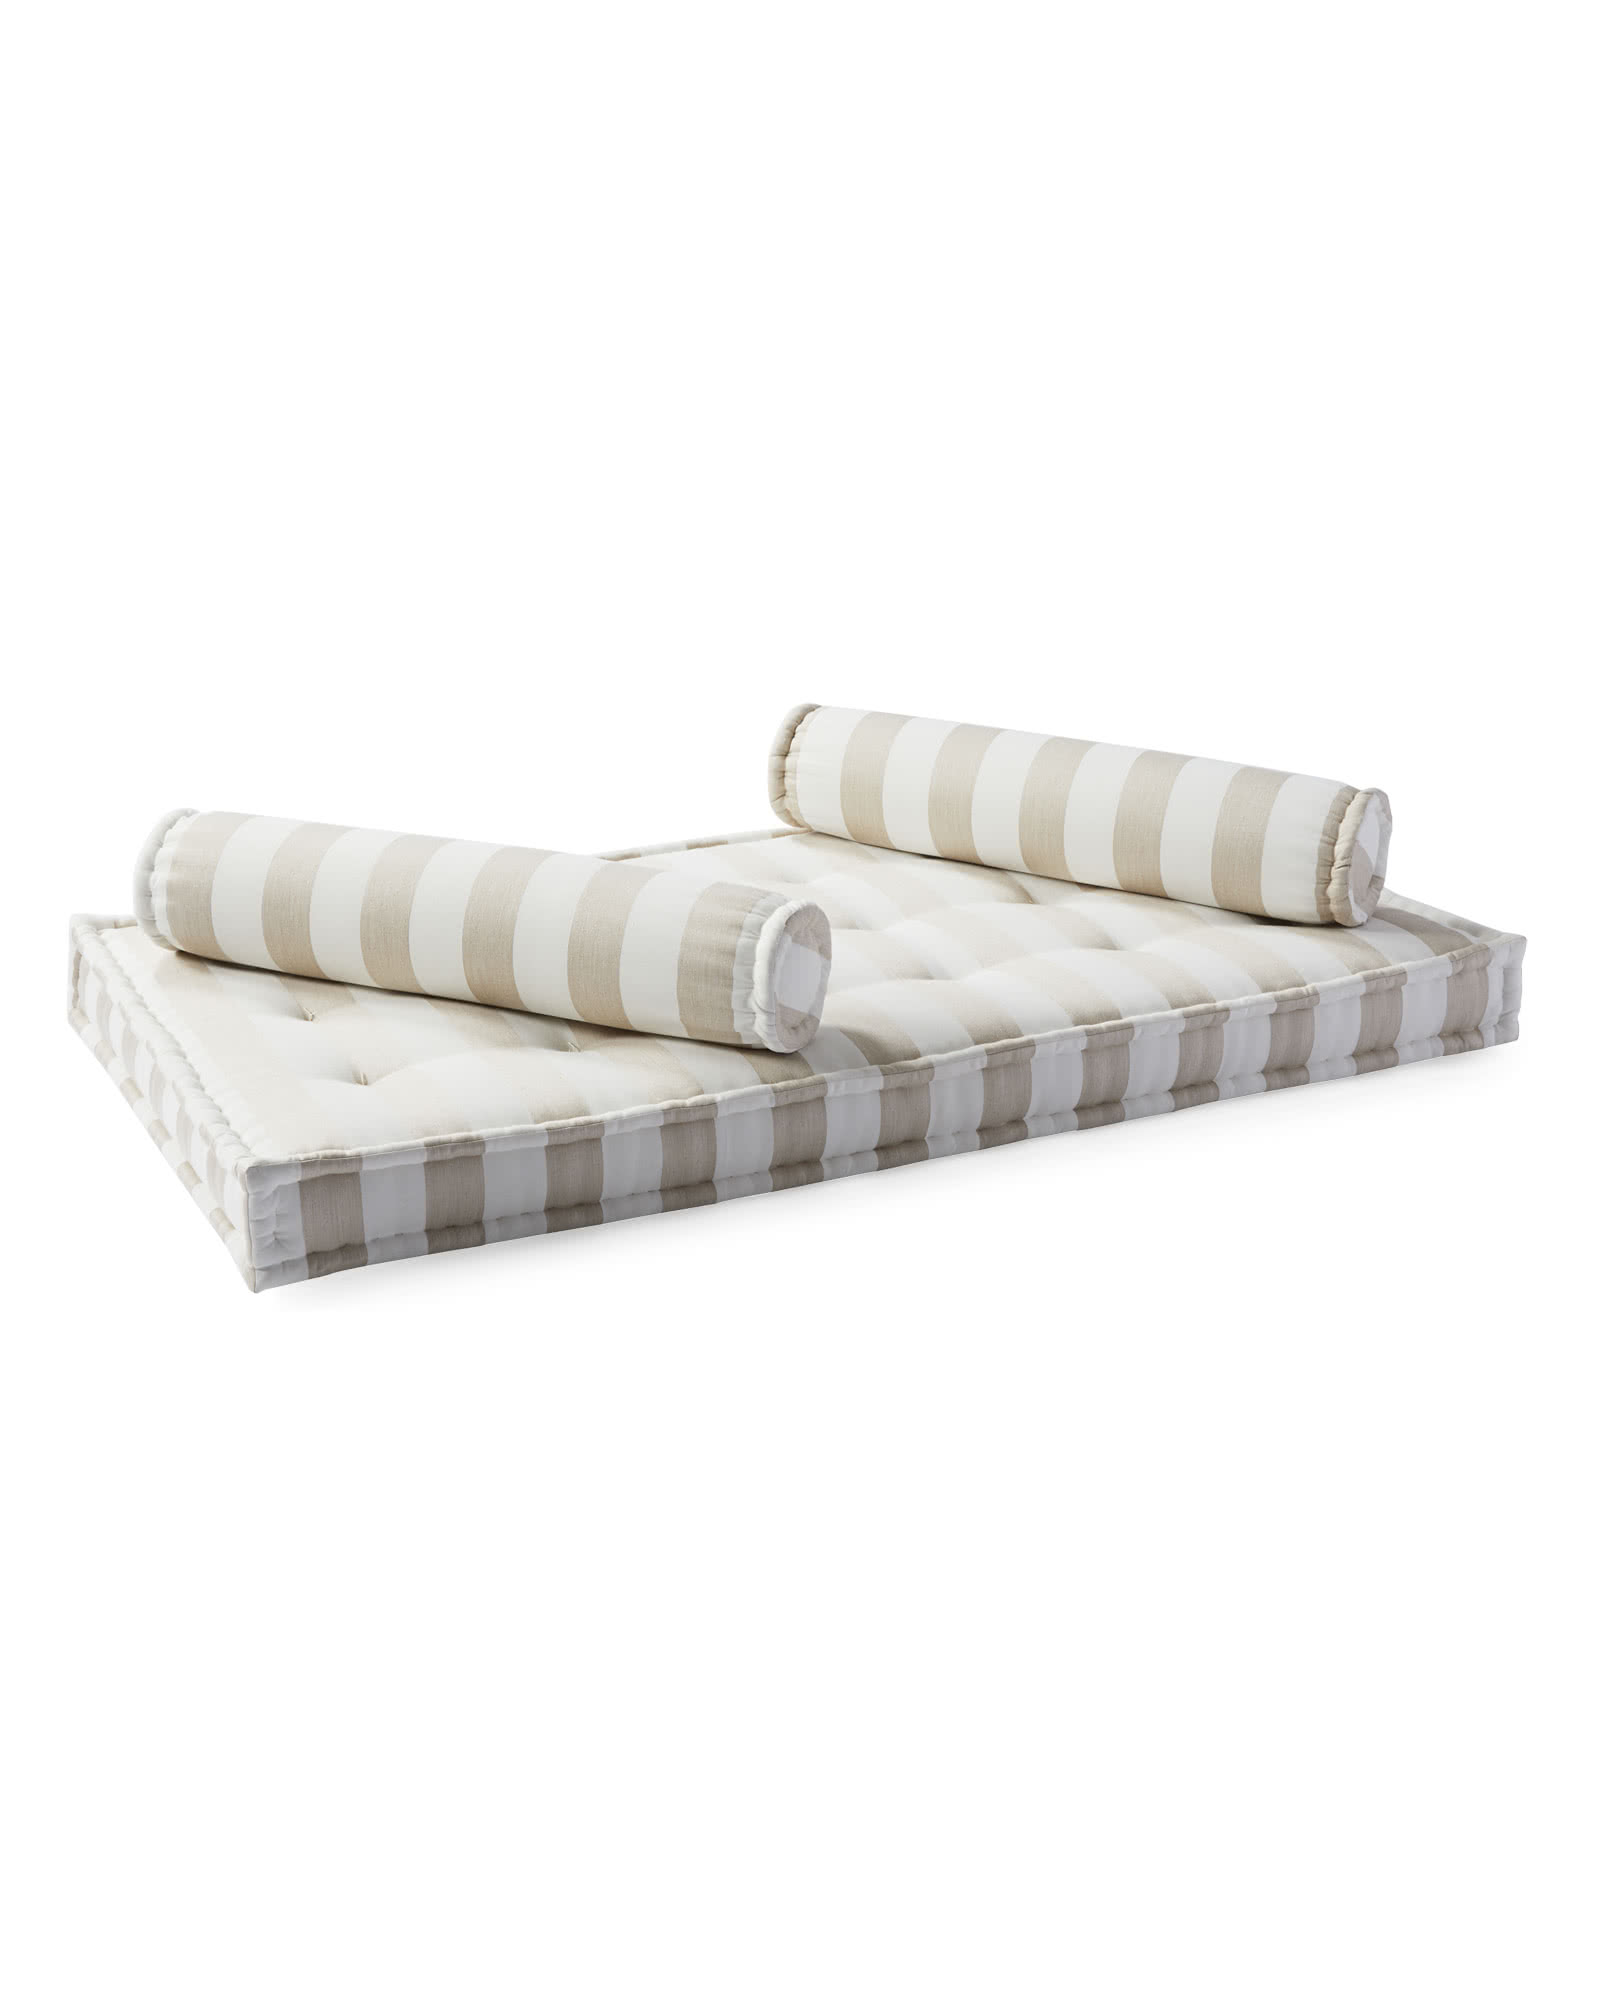 Indoor/Outdoor Daybed Mattress & Bolsters, Sunbrella Dune Stripe